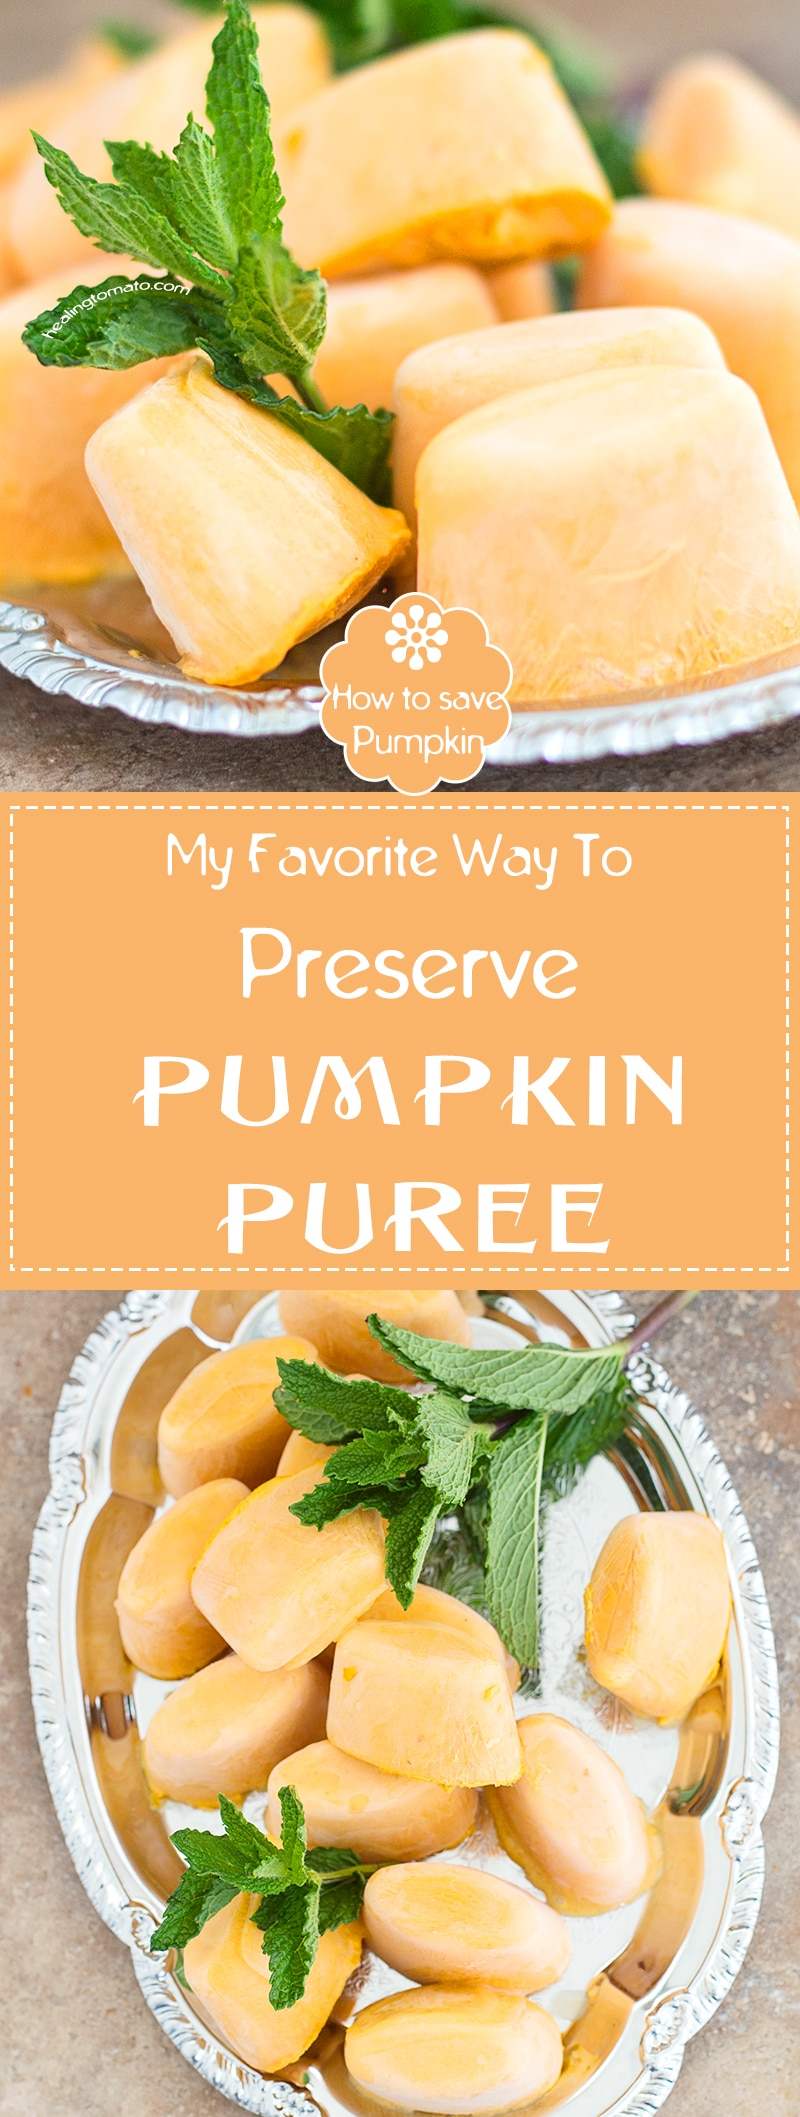 What to do with leftover pumpkin puree? Canning pumpkin puree can be a hassle, so, I have 5 very simple steps of preserving pumpkin puree at home. Think ice cube tray! Use it year-round #diy #preserve #pumpkin #pumpkinpuree #leftover https://www.healingtomato.com/preserve-pumpkin-puree/